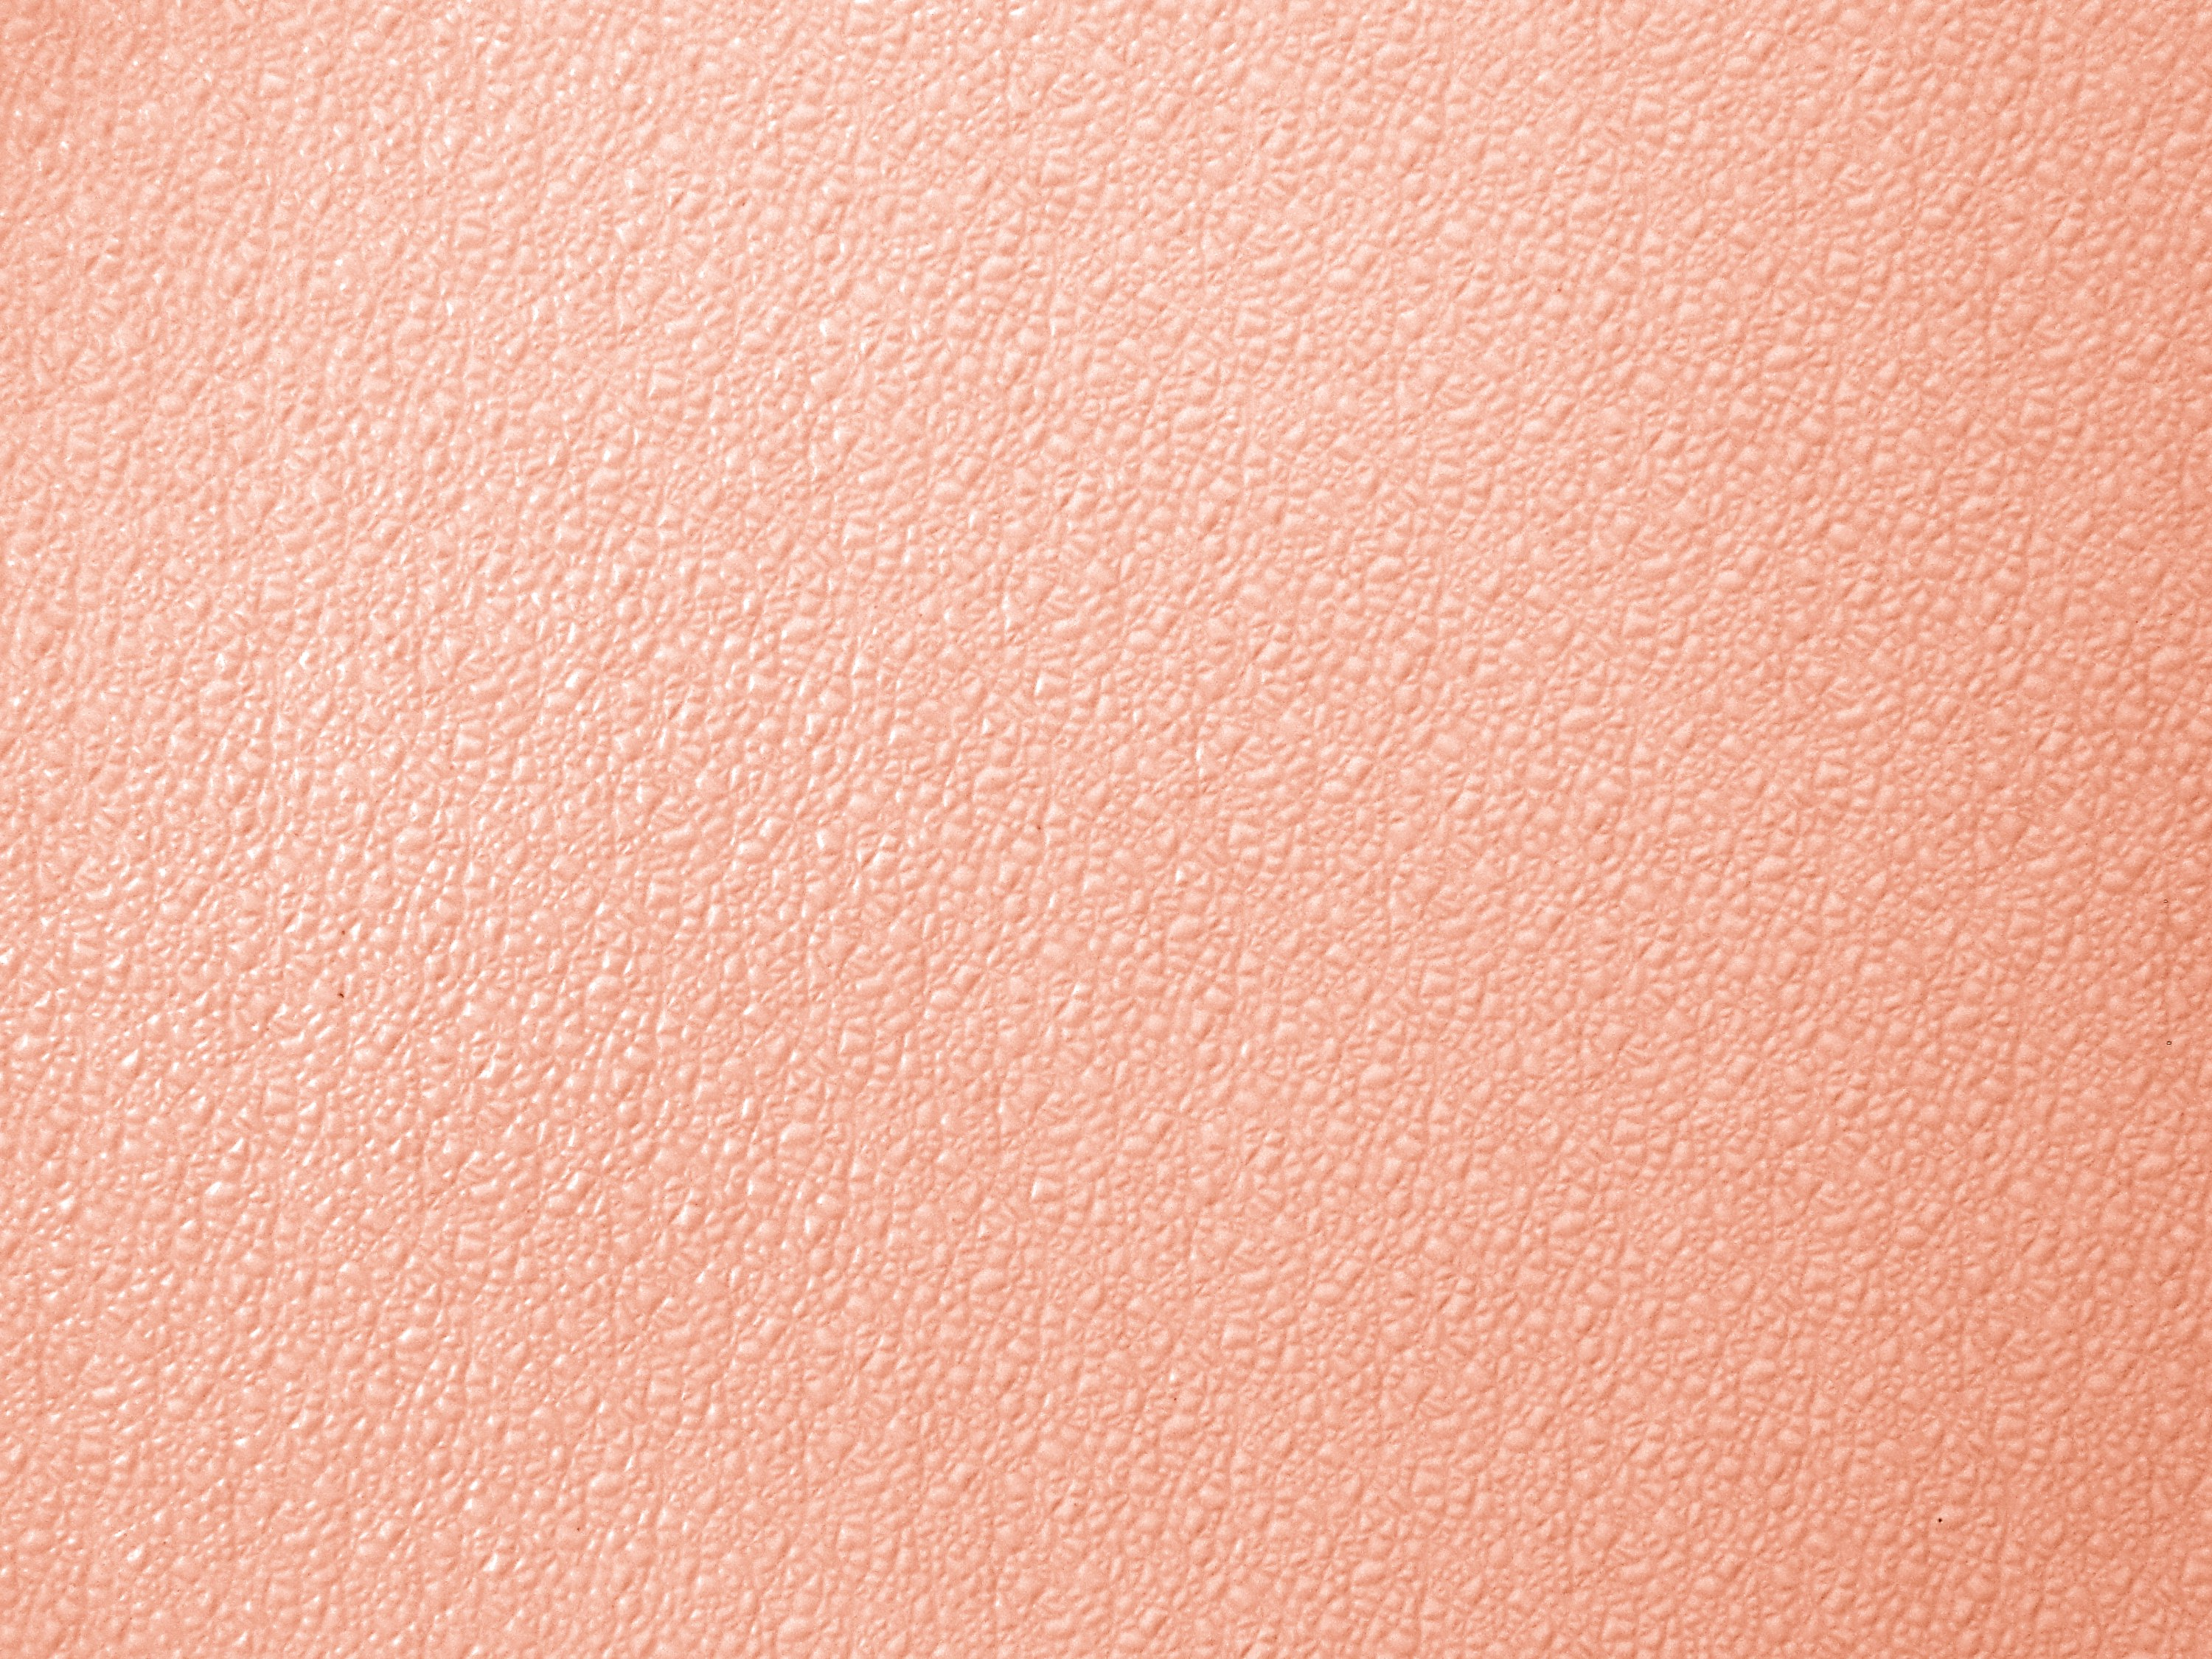 Bumpy peach colored plastic texture picture free for Gypsum colour